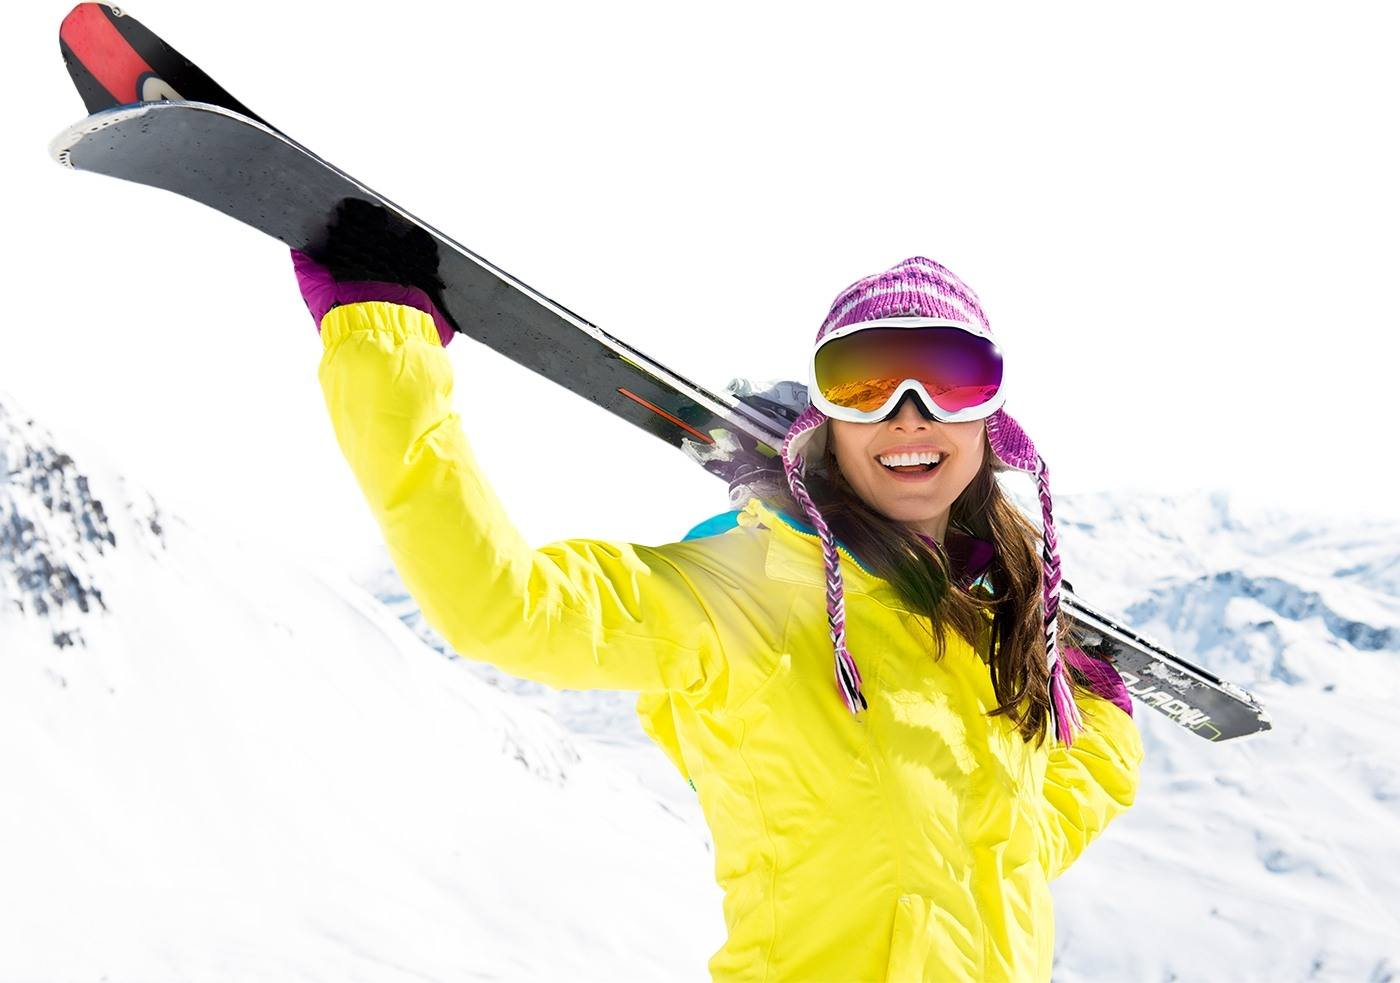 Smiling woman holding skis